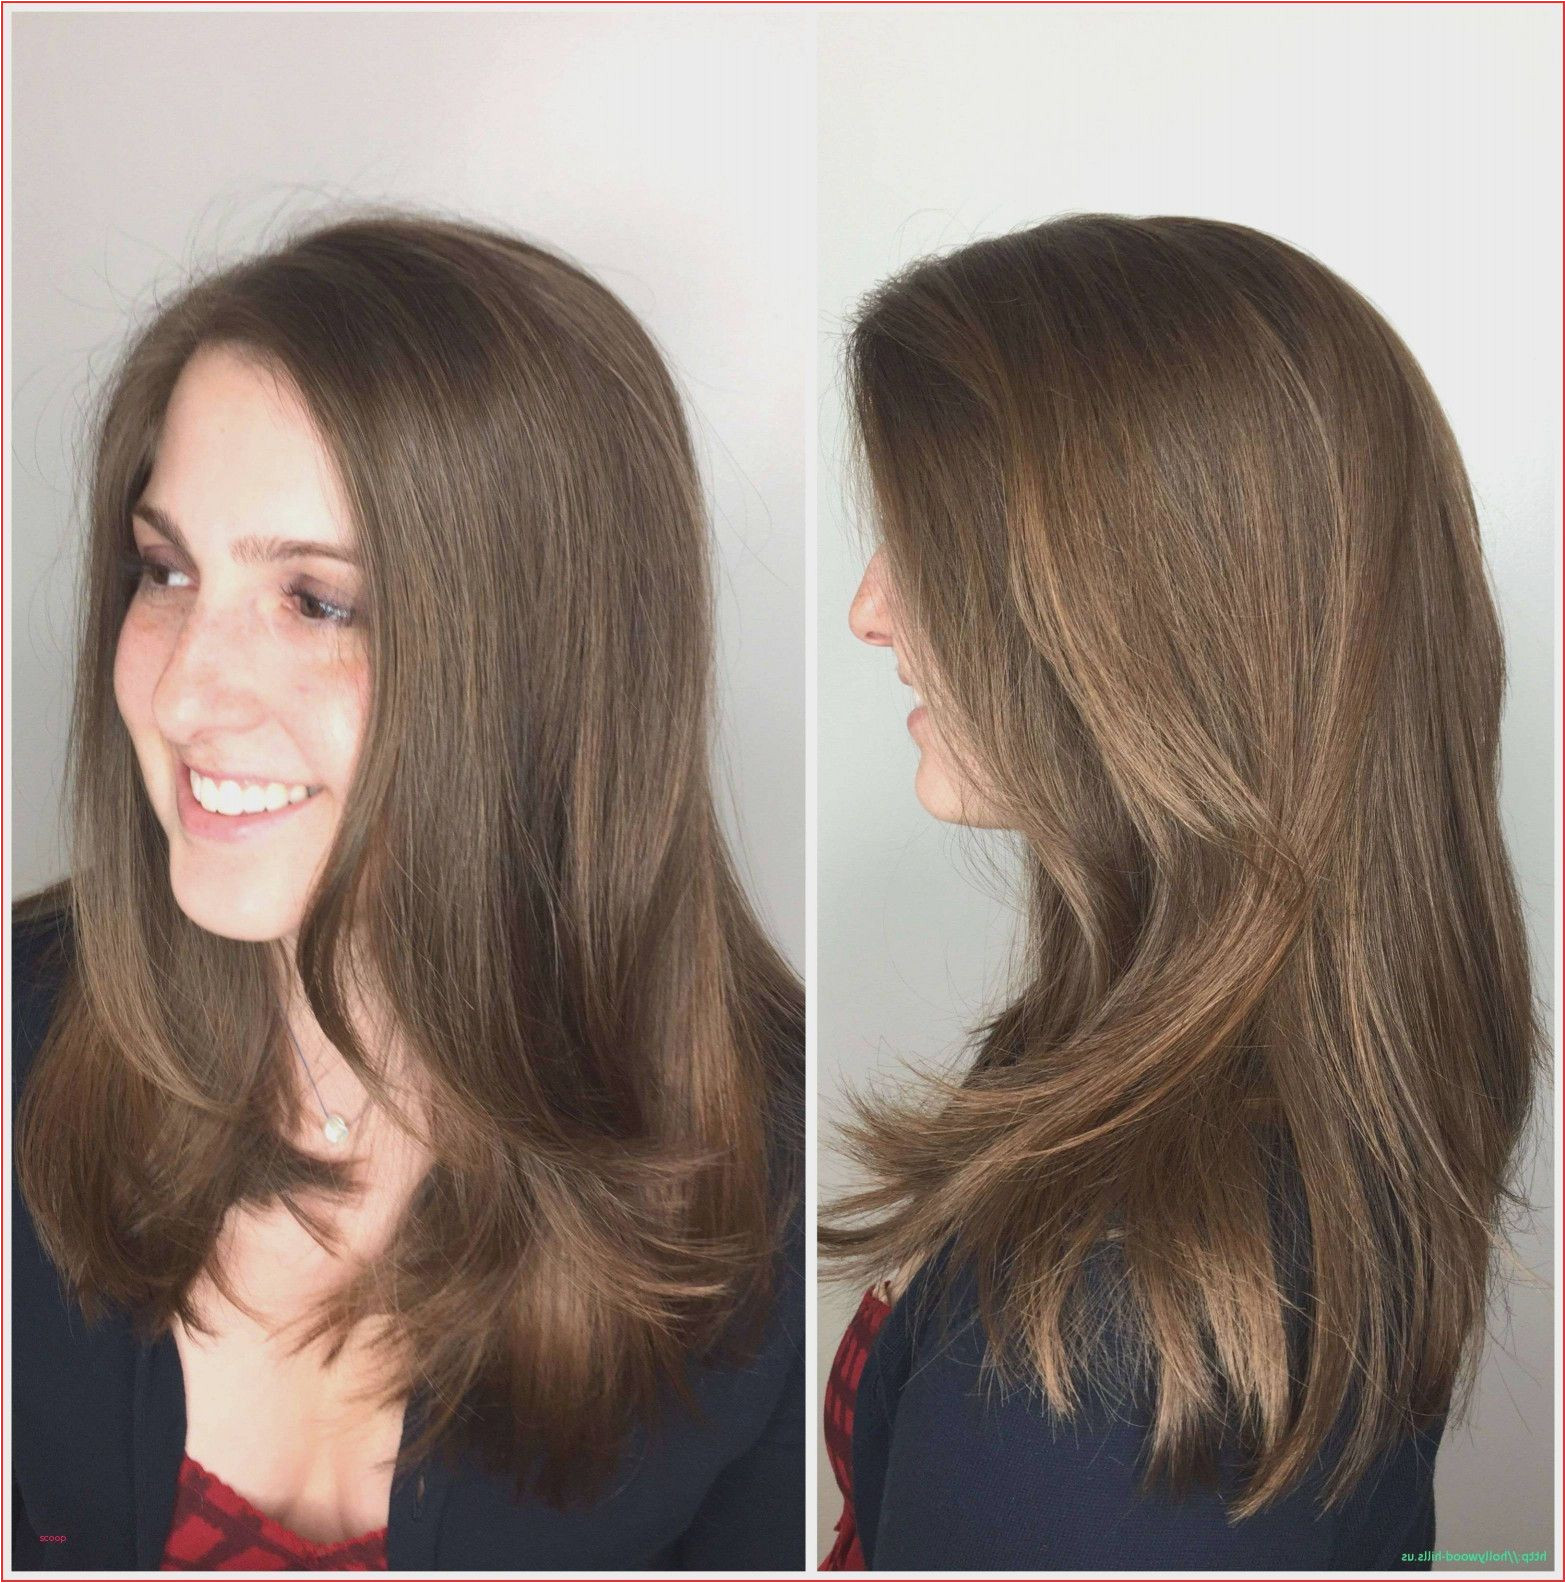 Hairstyles Name for Girls Best Hair Style Names Best Haircut Names All Hairstyle Names